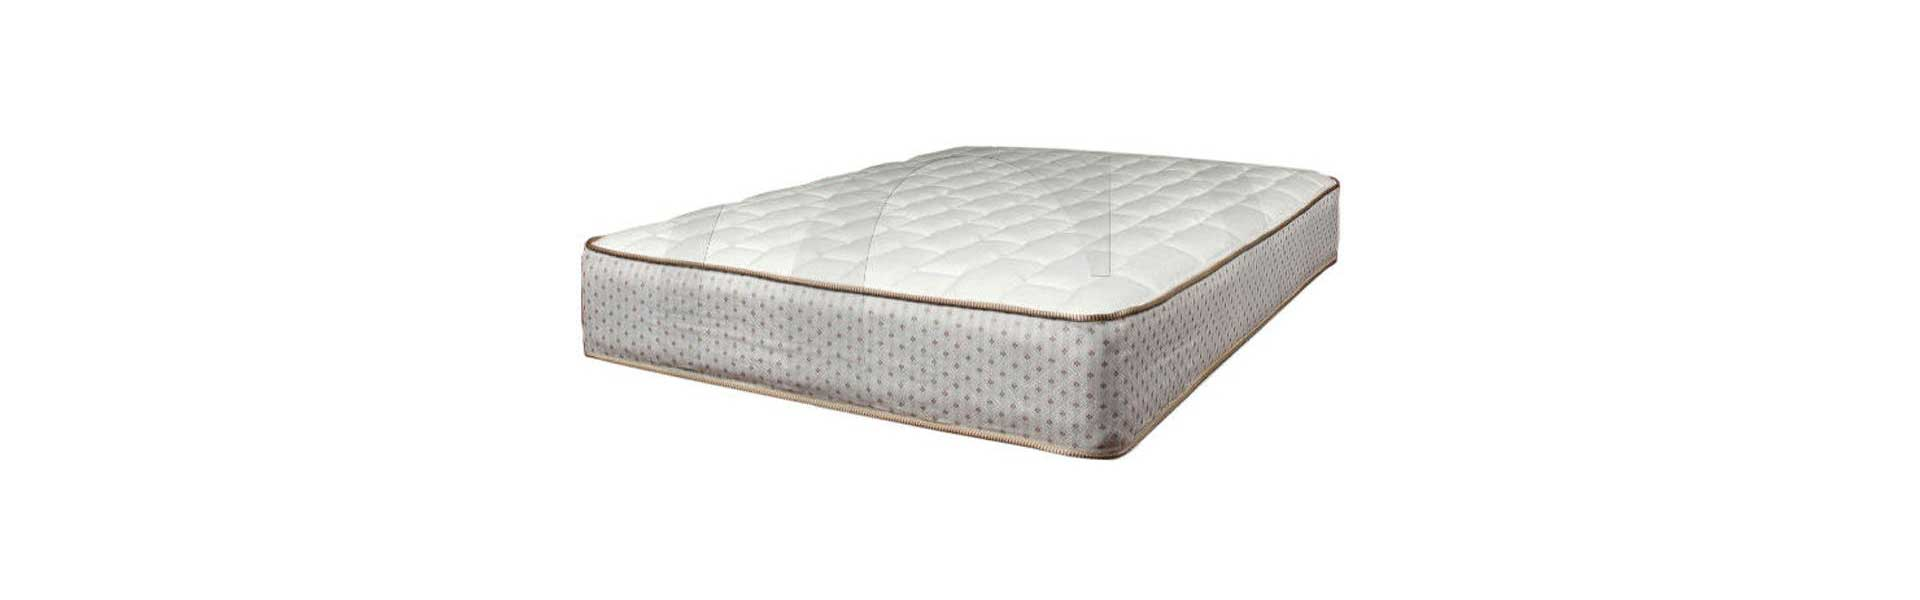 Sealy Posturepedic Backcare Elite Mattress Englander